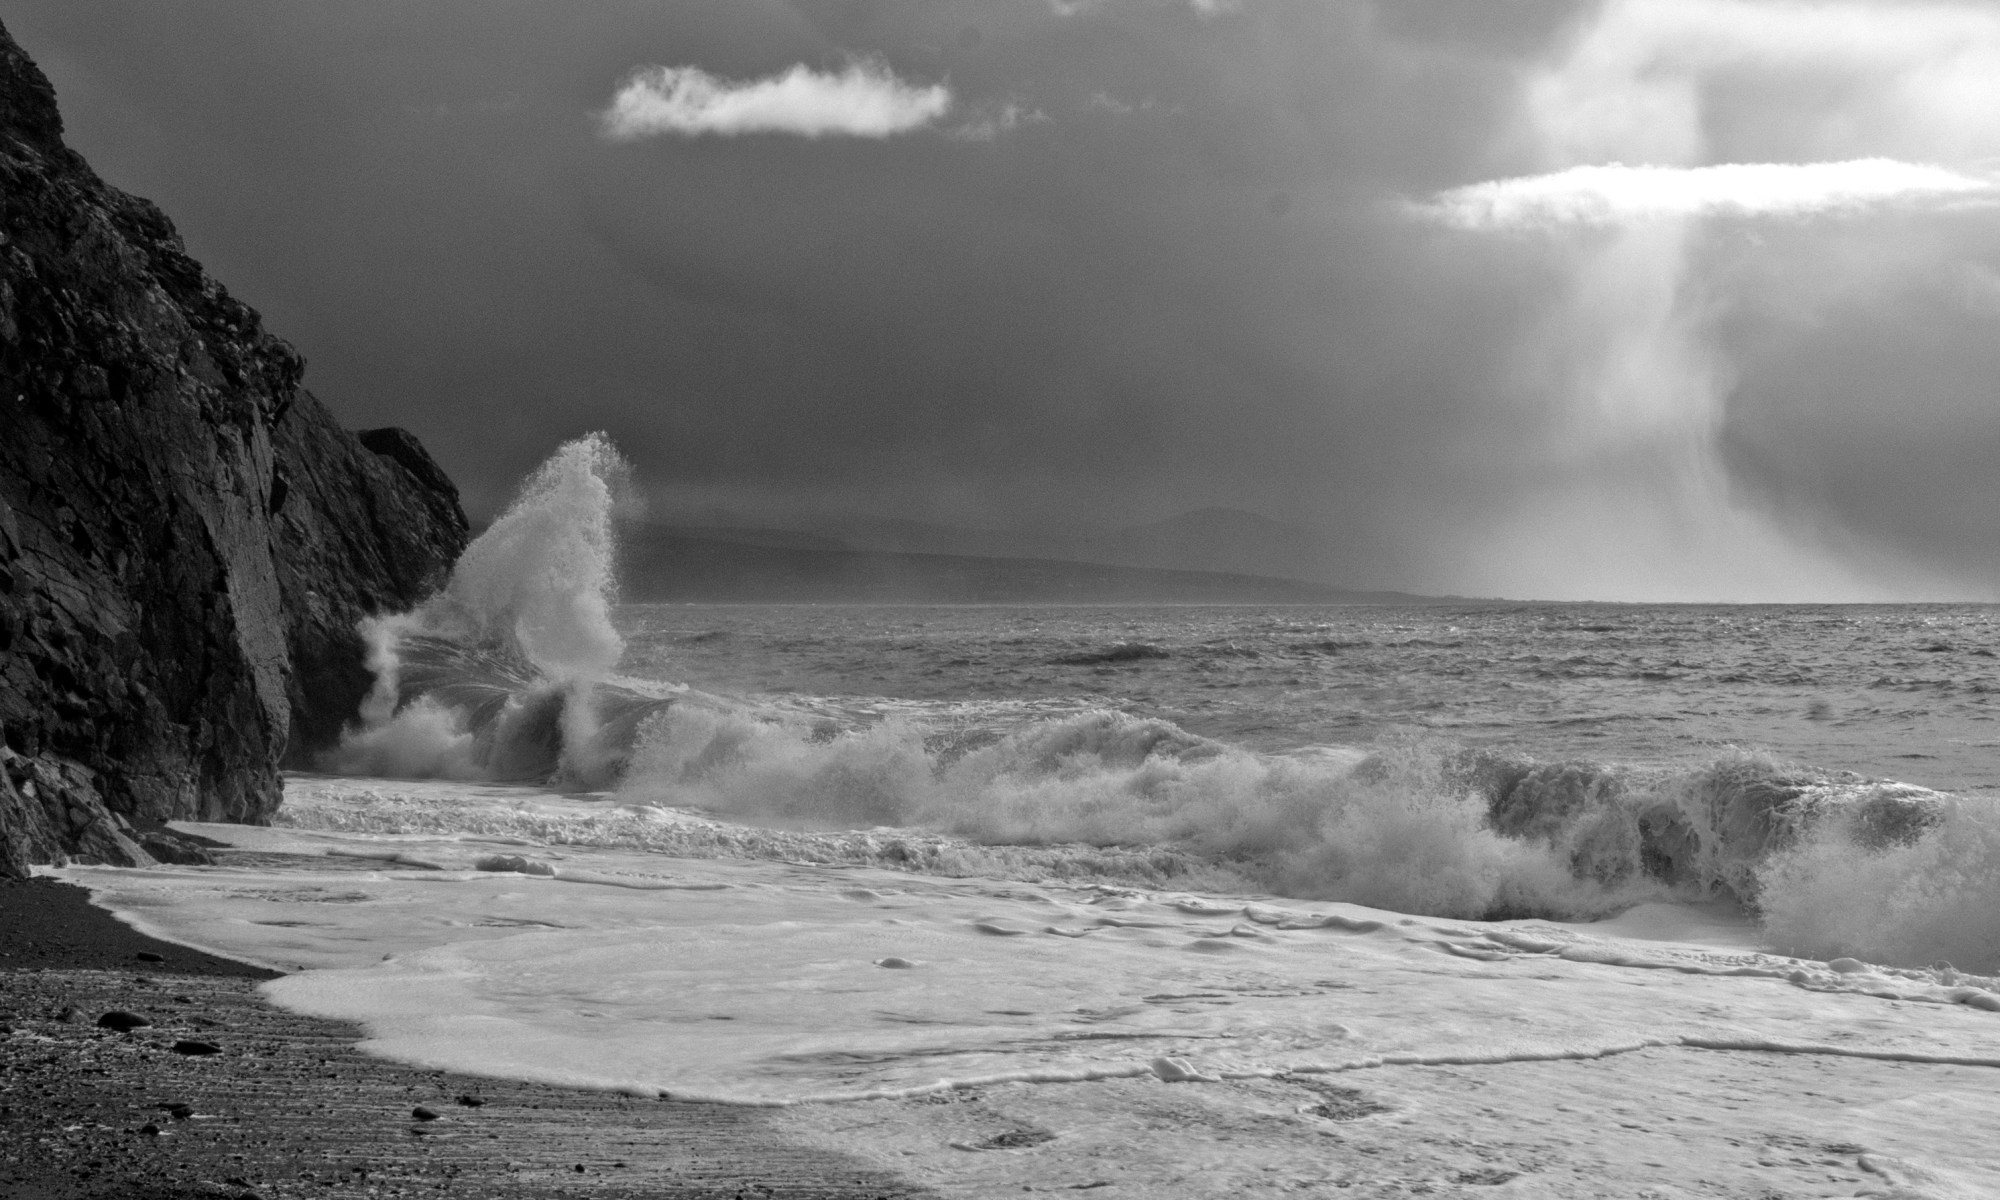 Storm approaching Criccieth Beach